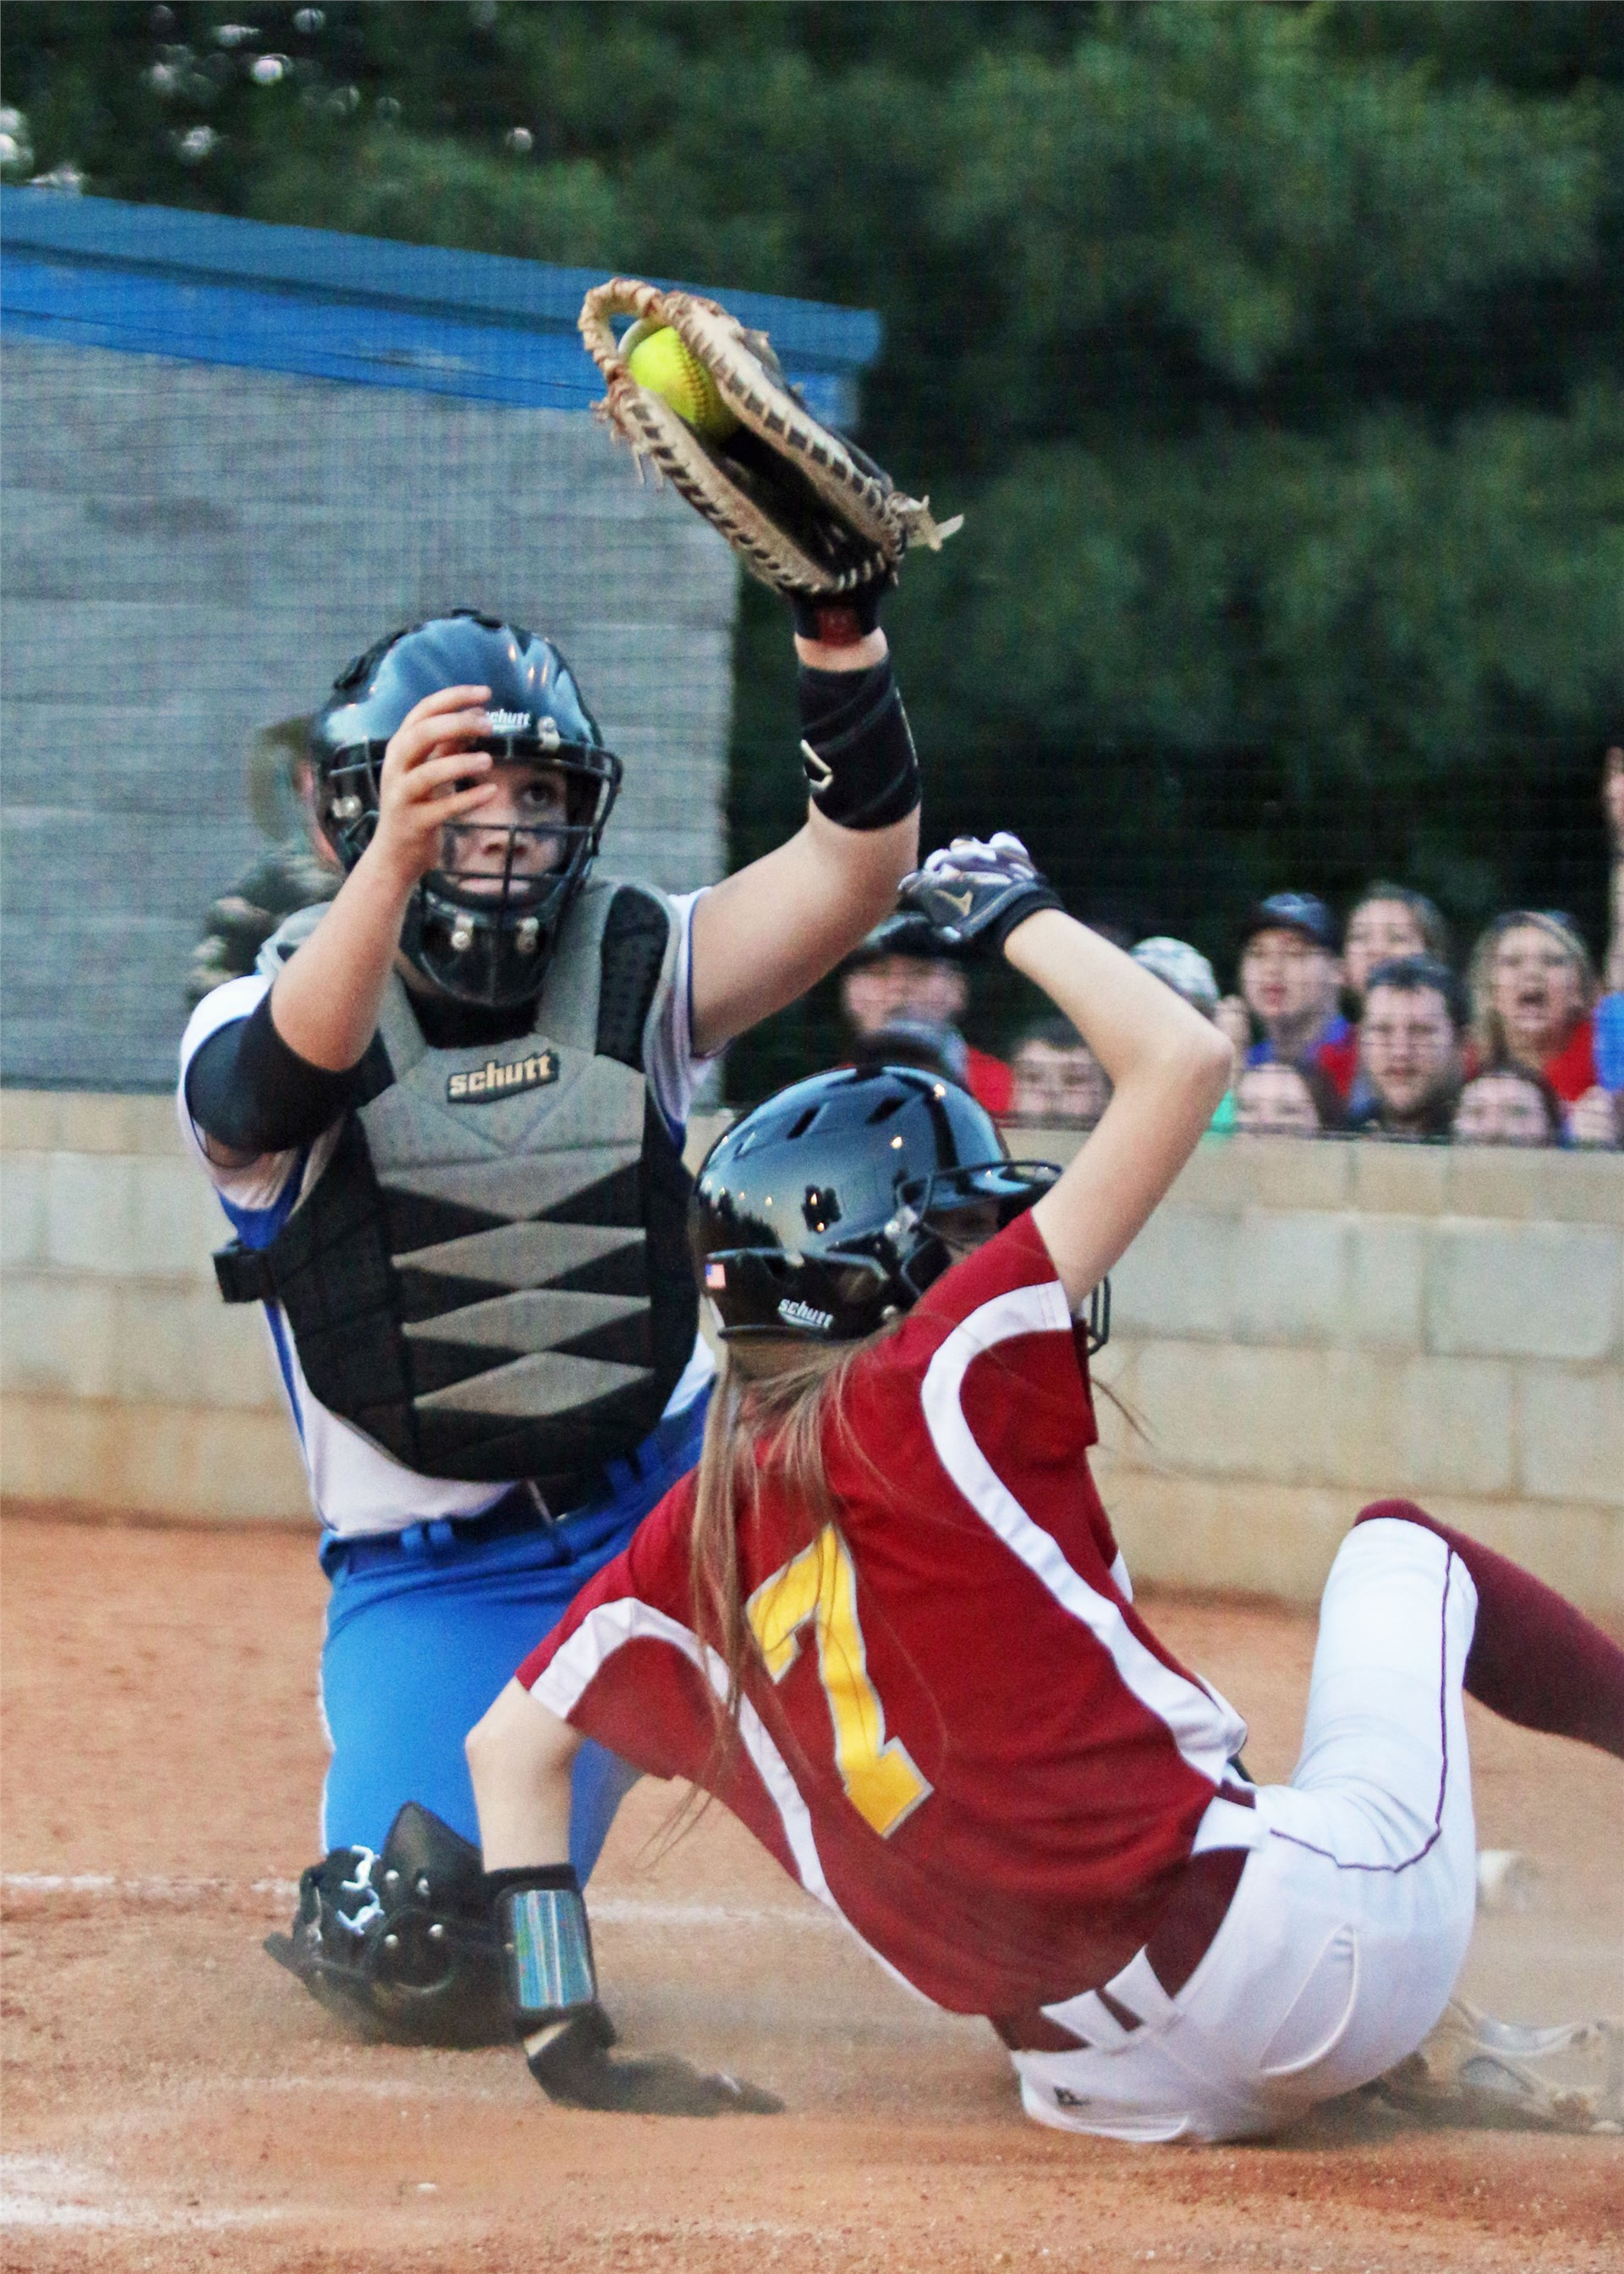 Ryley Whitney with play at the plate.